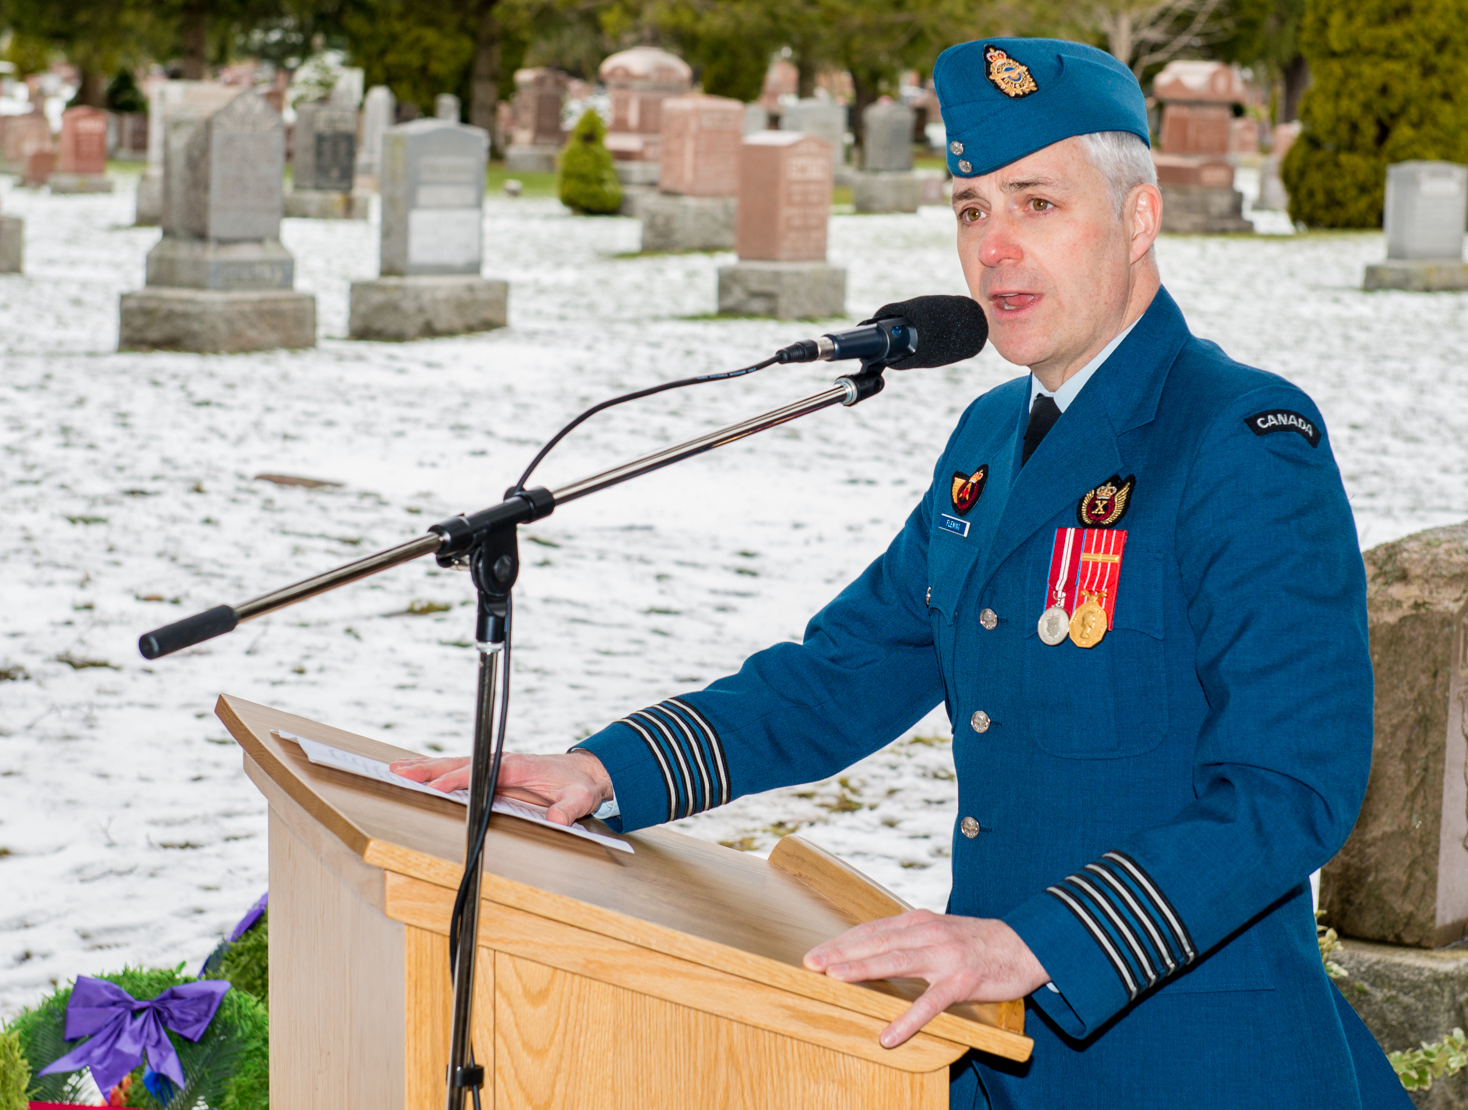 The commander of 16 Wing Borden, Colonel Andrew Fleming, addresses attendees at the ceremony commemorating Cadet James Talbot, the first casualty of the Royal Flying Corps Canada pilot training program, at Dorchester Union Cemetery, in Dorchester Ontario, on April 7, 2017. PHOTO: Corporal Aydyn Neifer, BM03-2017-0107-06